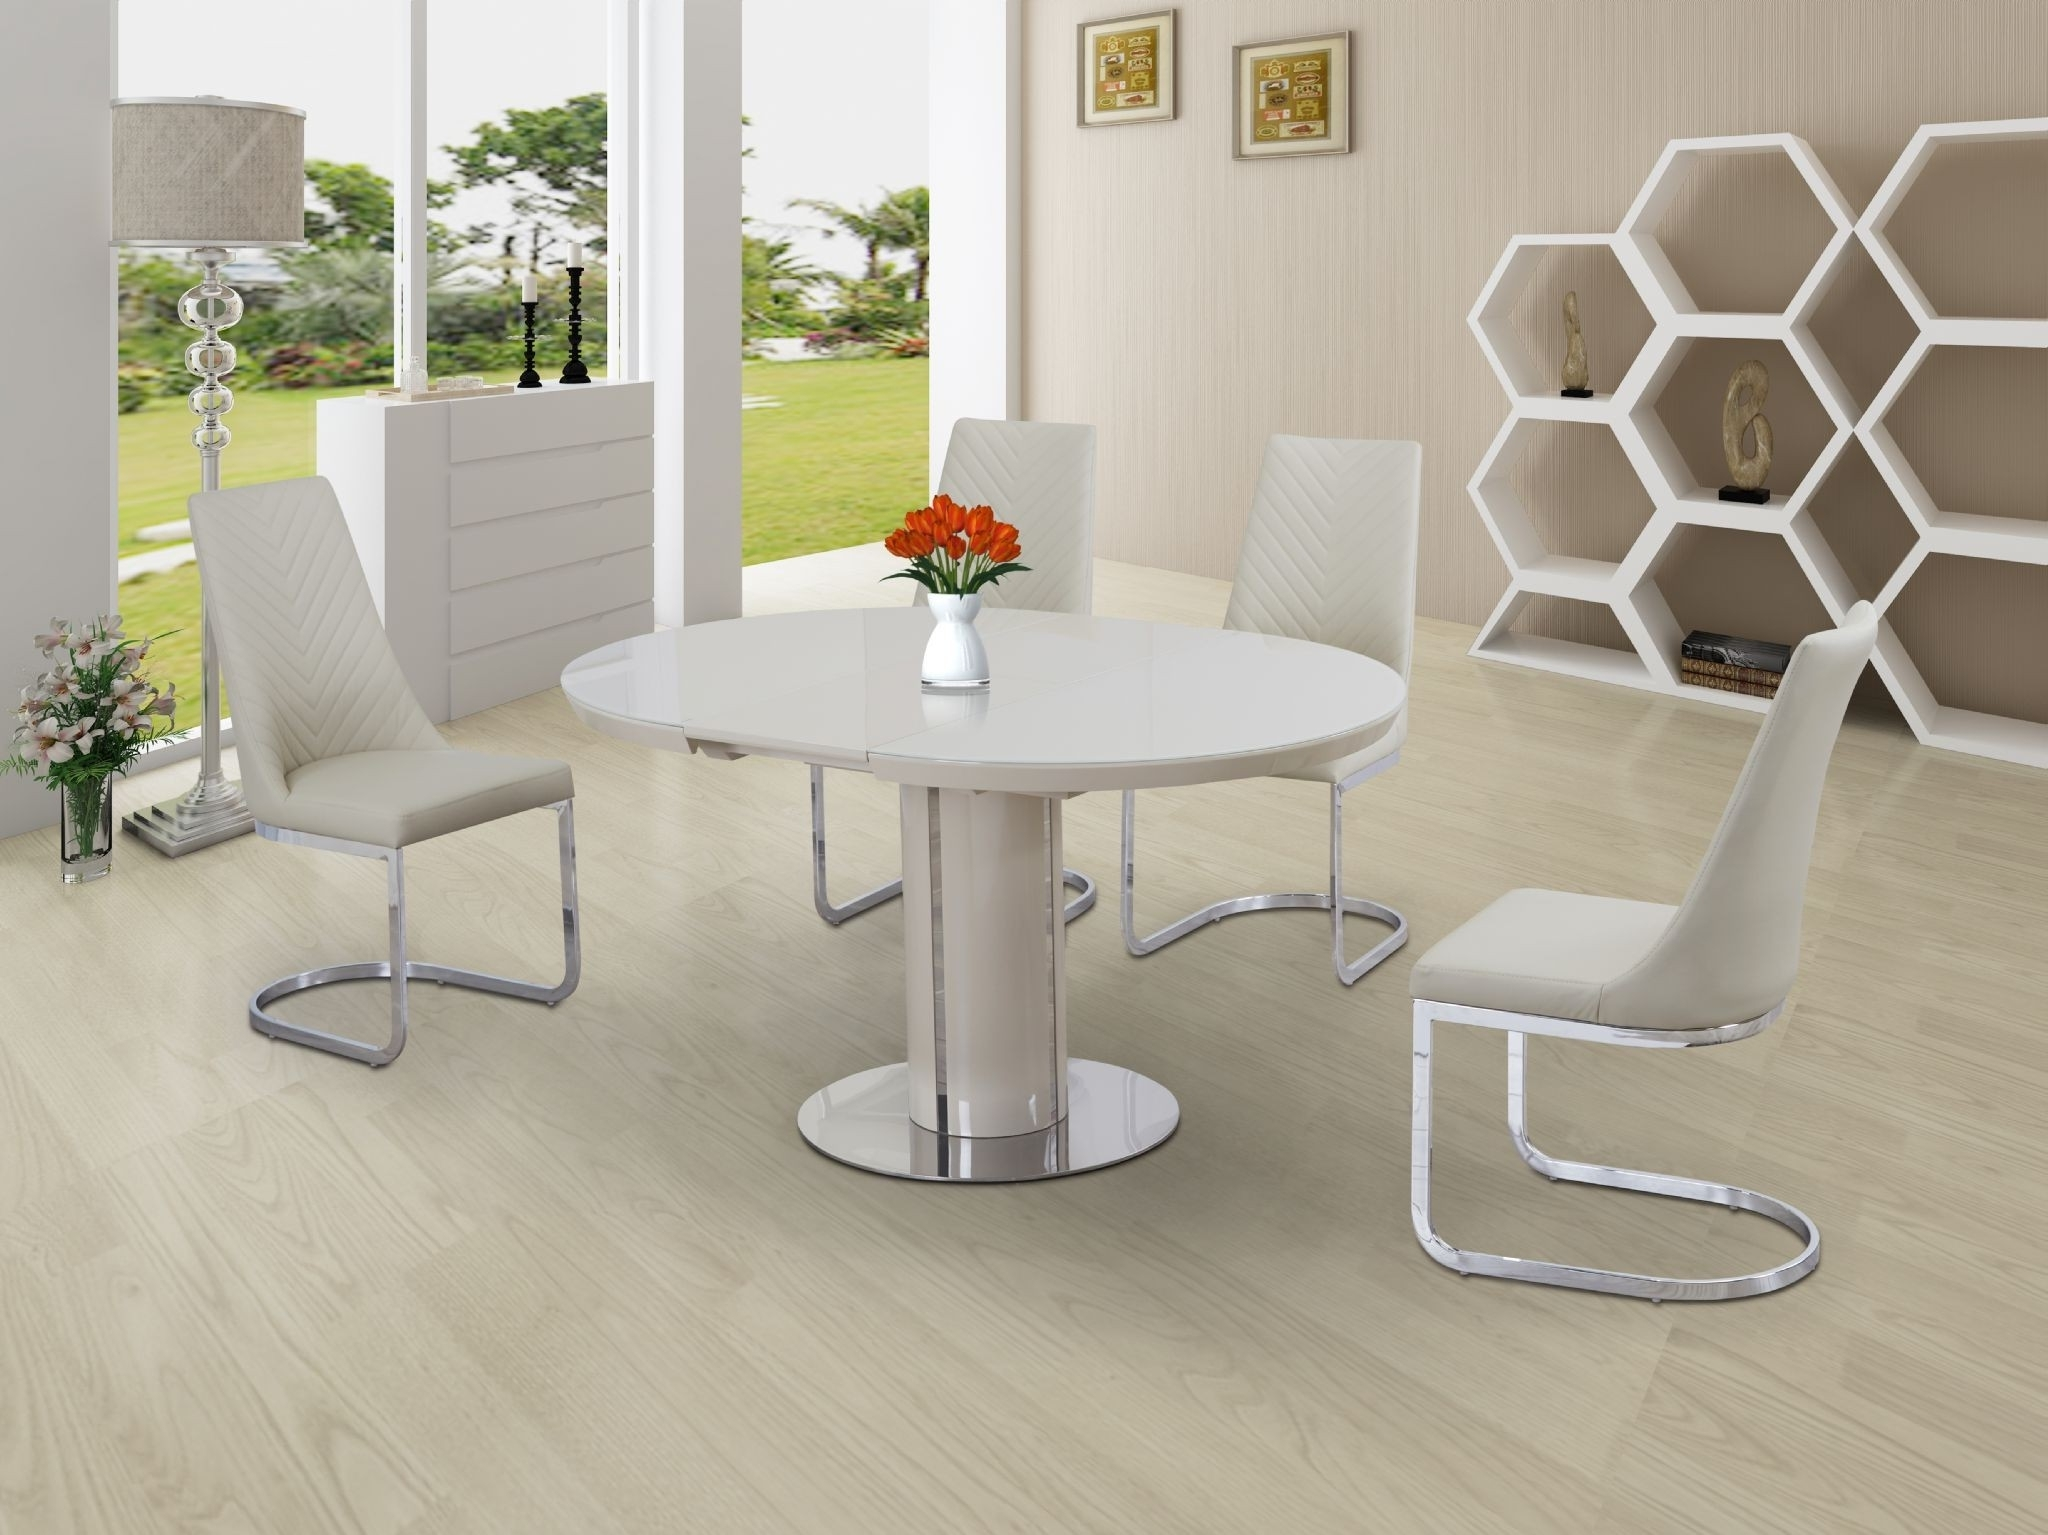 White Gloss Extendable Dining Tables Pertaining To Most Recently Released Buy Annular Cream High Gloss Extending Dining Table (View 20 of 25)